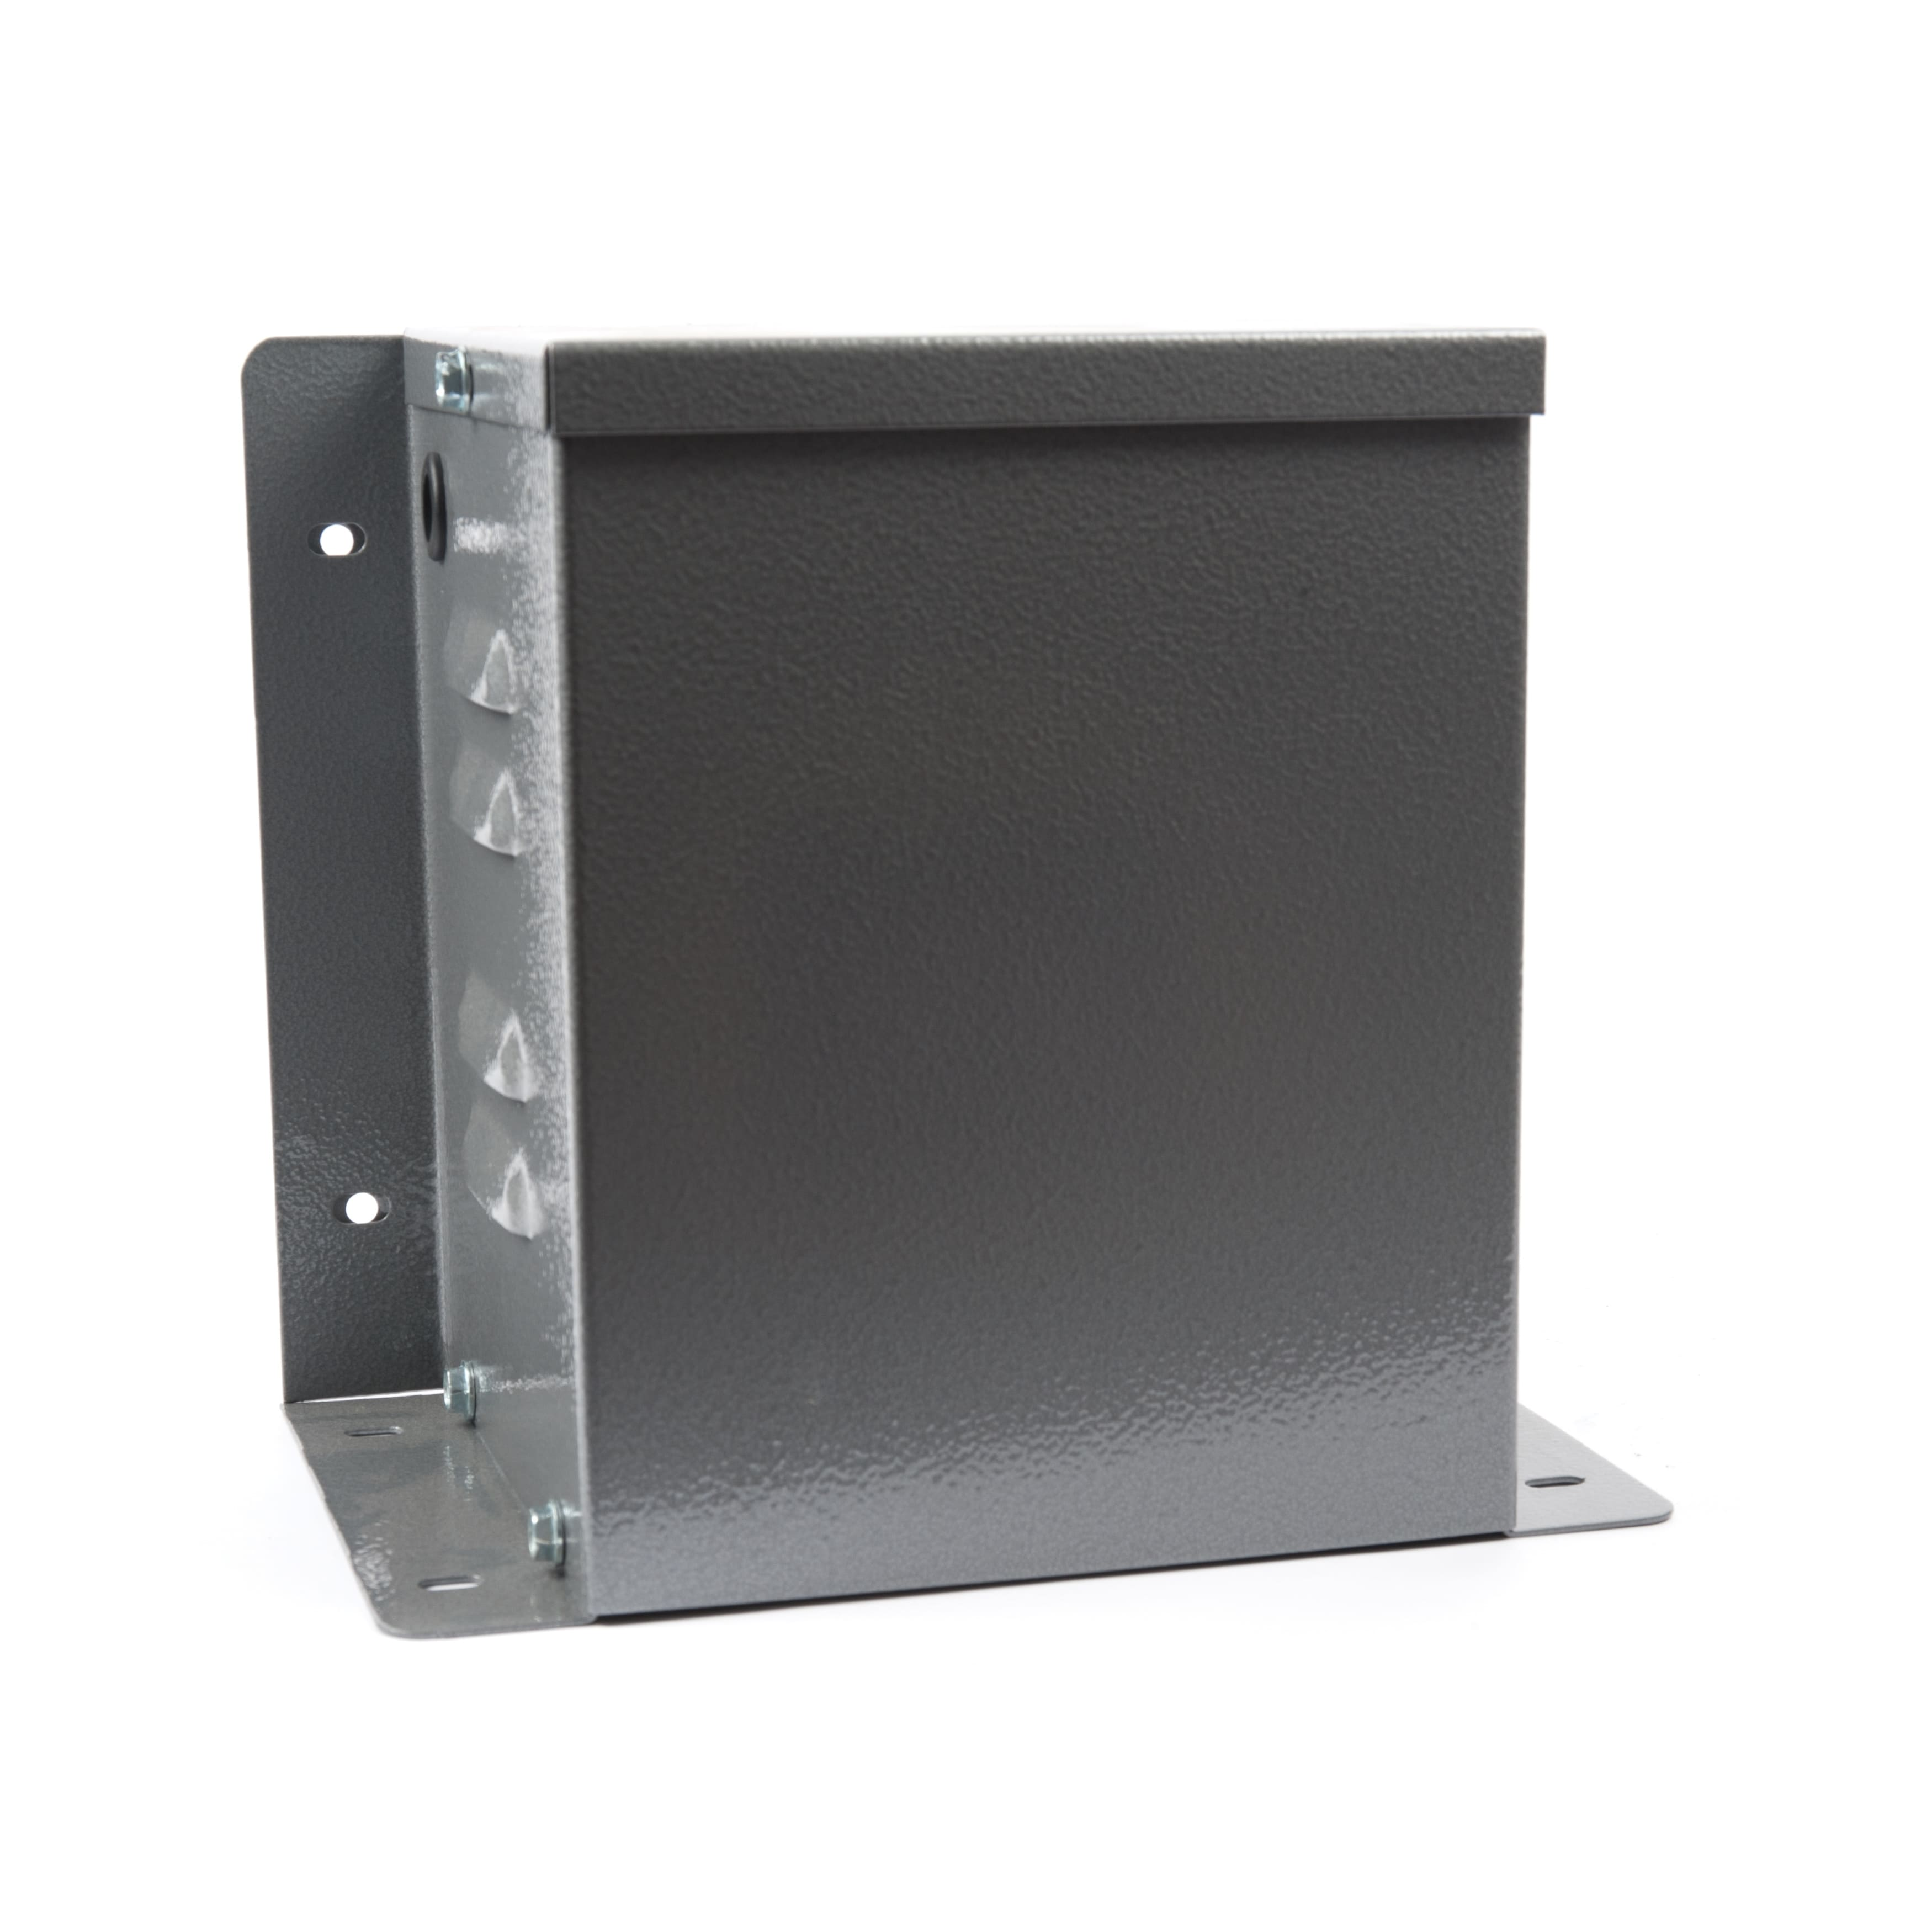 Enclosure And Control Panel Accessories Eastern Transformers Gt Enclosures Panels Boards Electrical Boxes